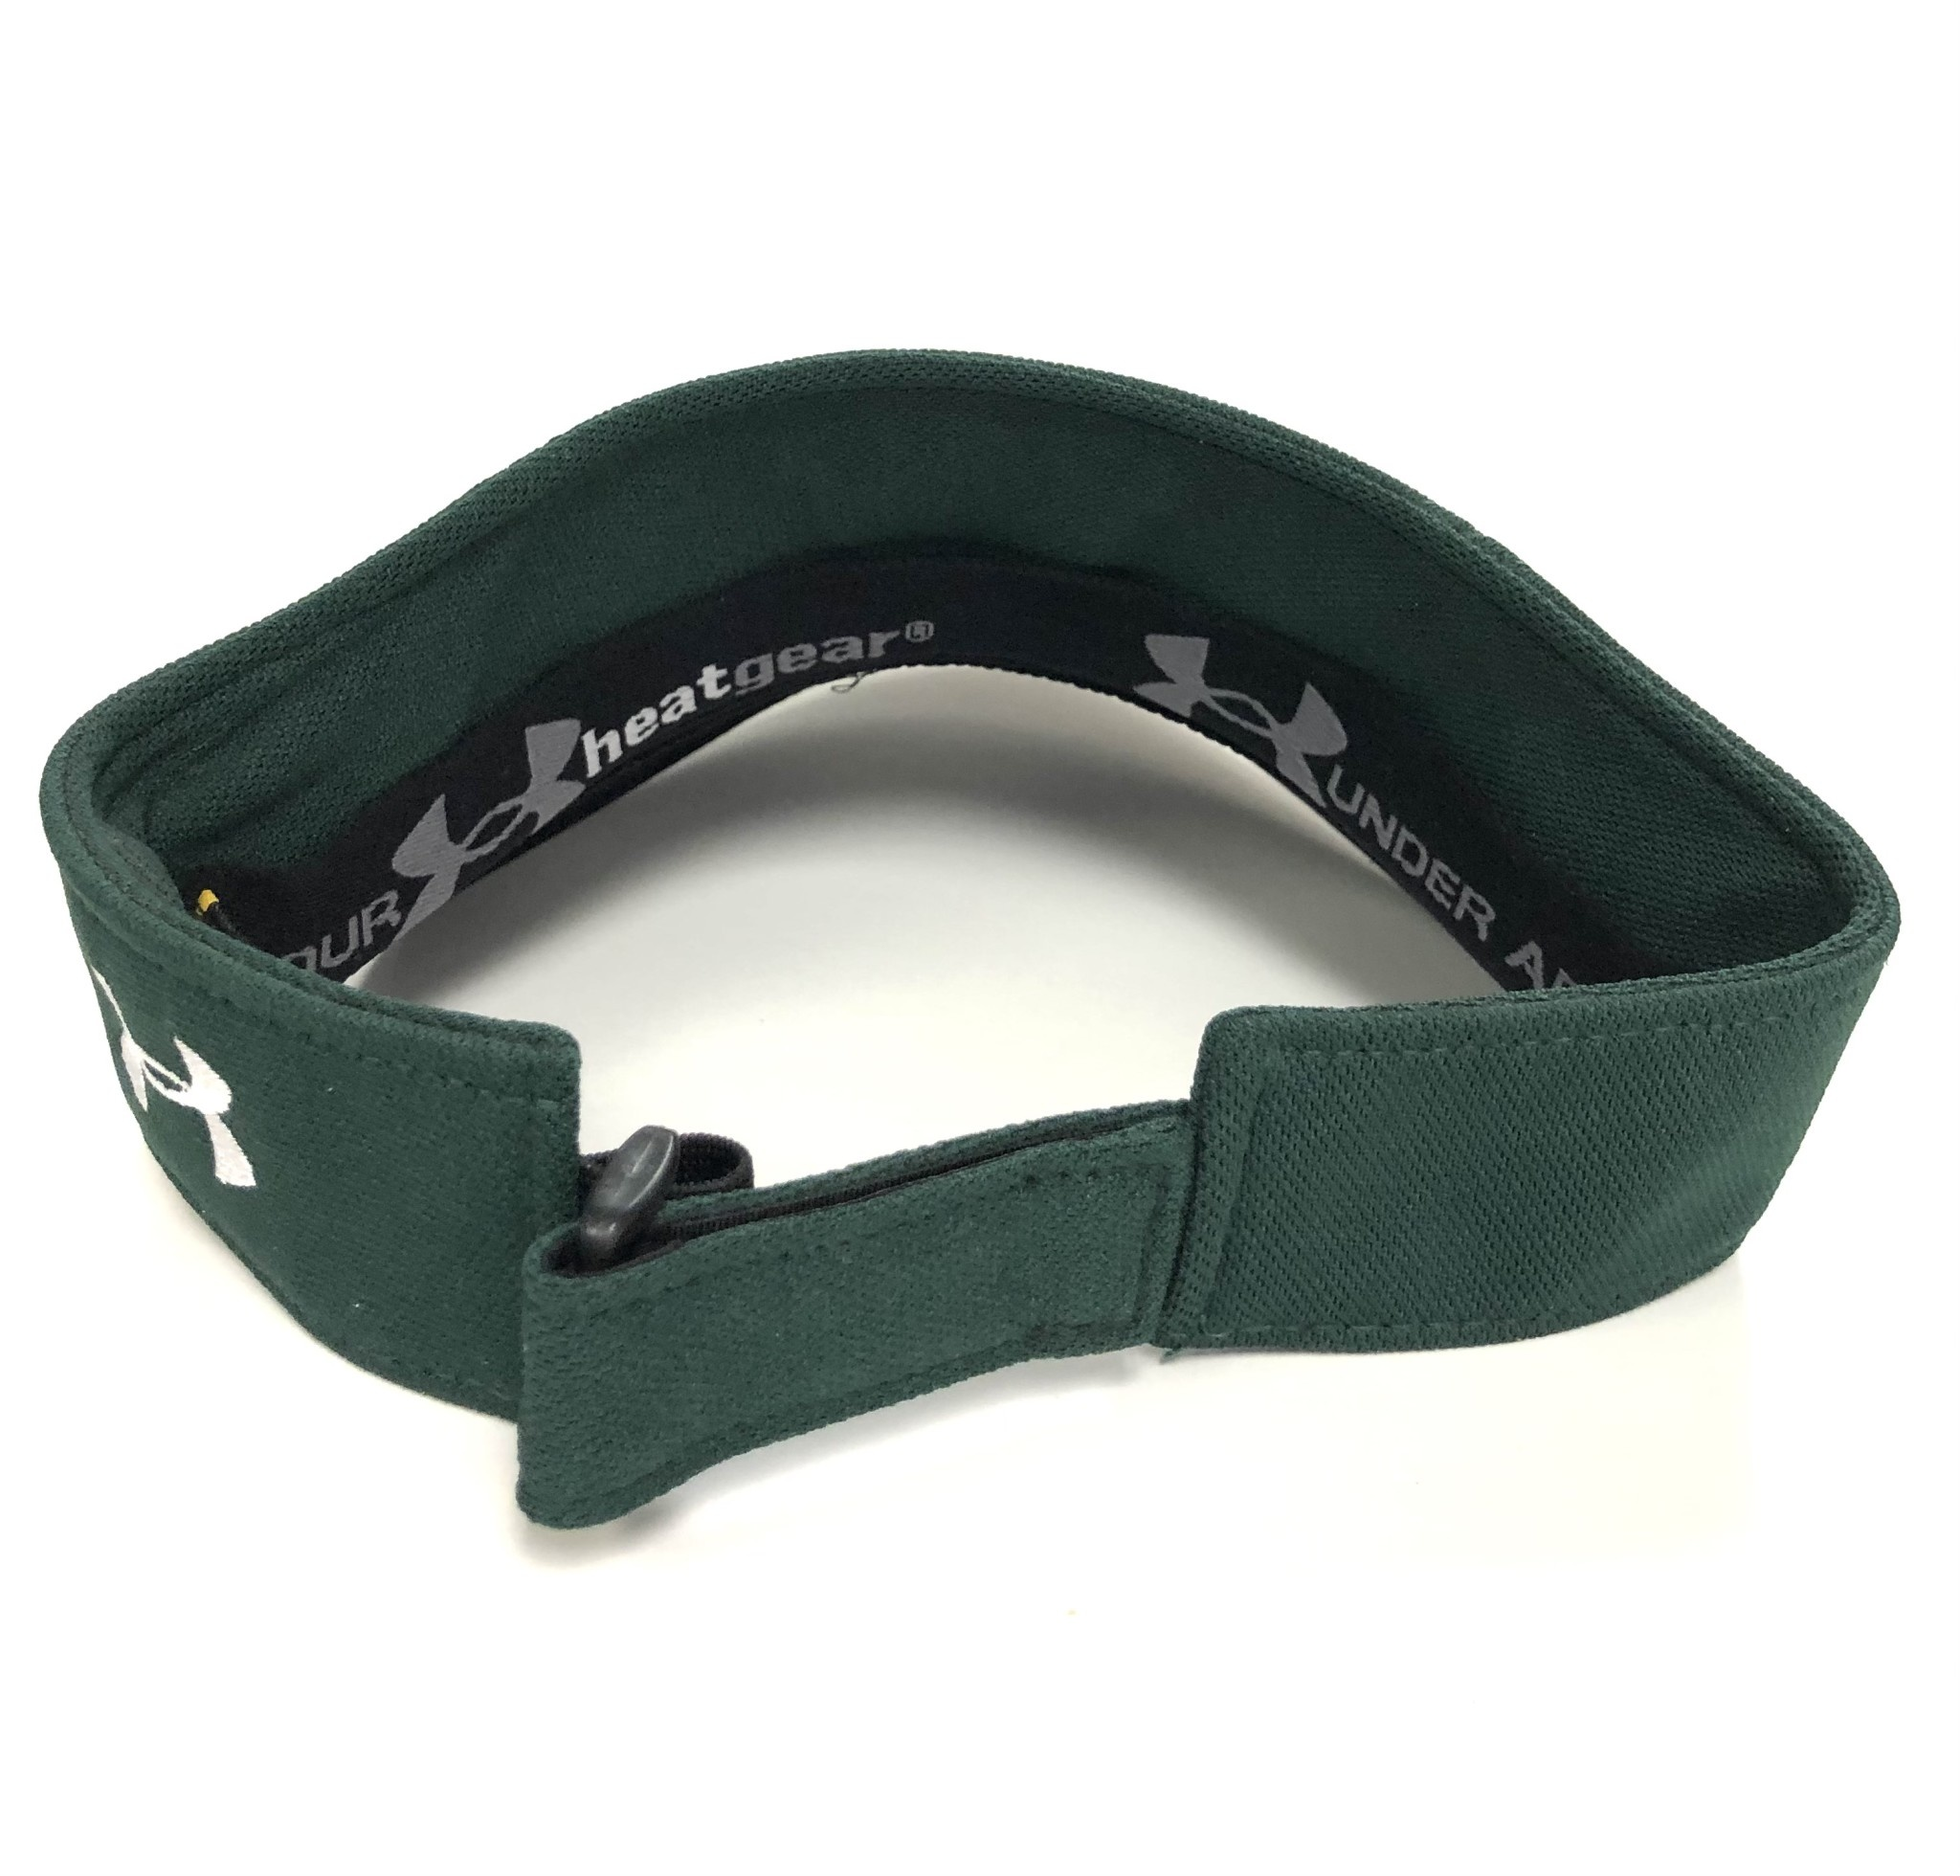 Under Armour Visor: Under Armour Green with classic cathead